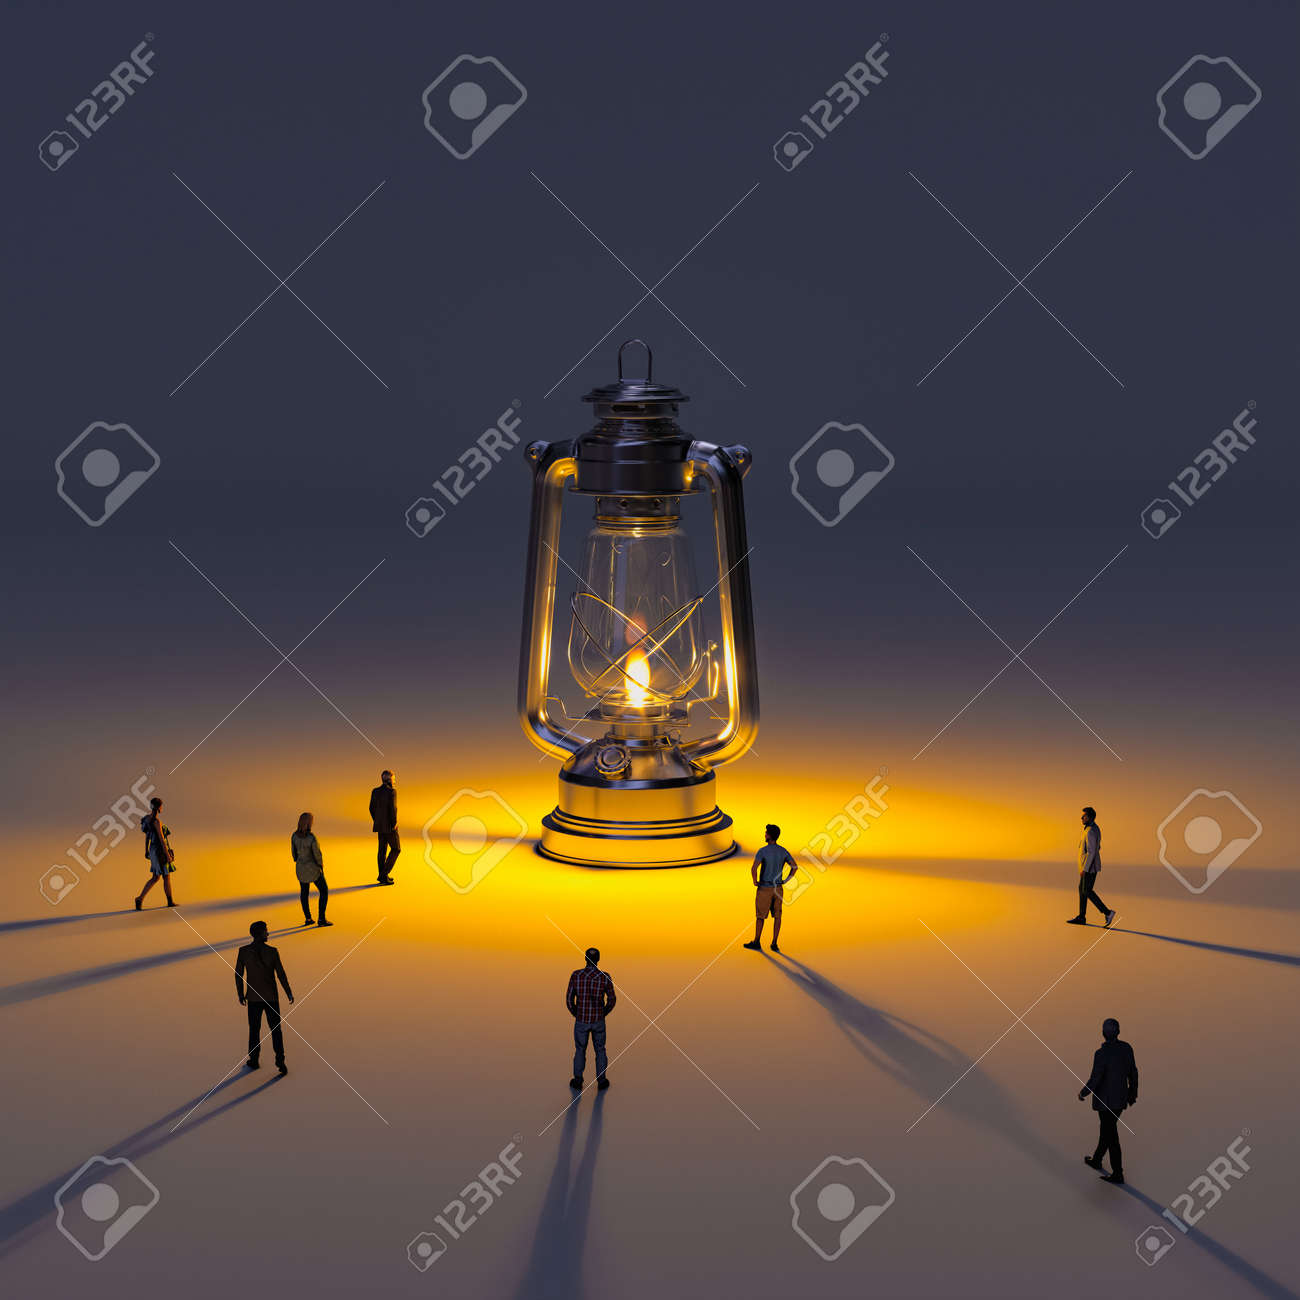 huge kerosene lamp with flame and people going towards the light. 3d render models - 173236169